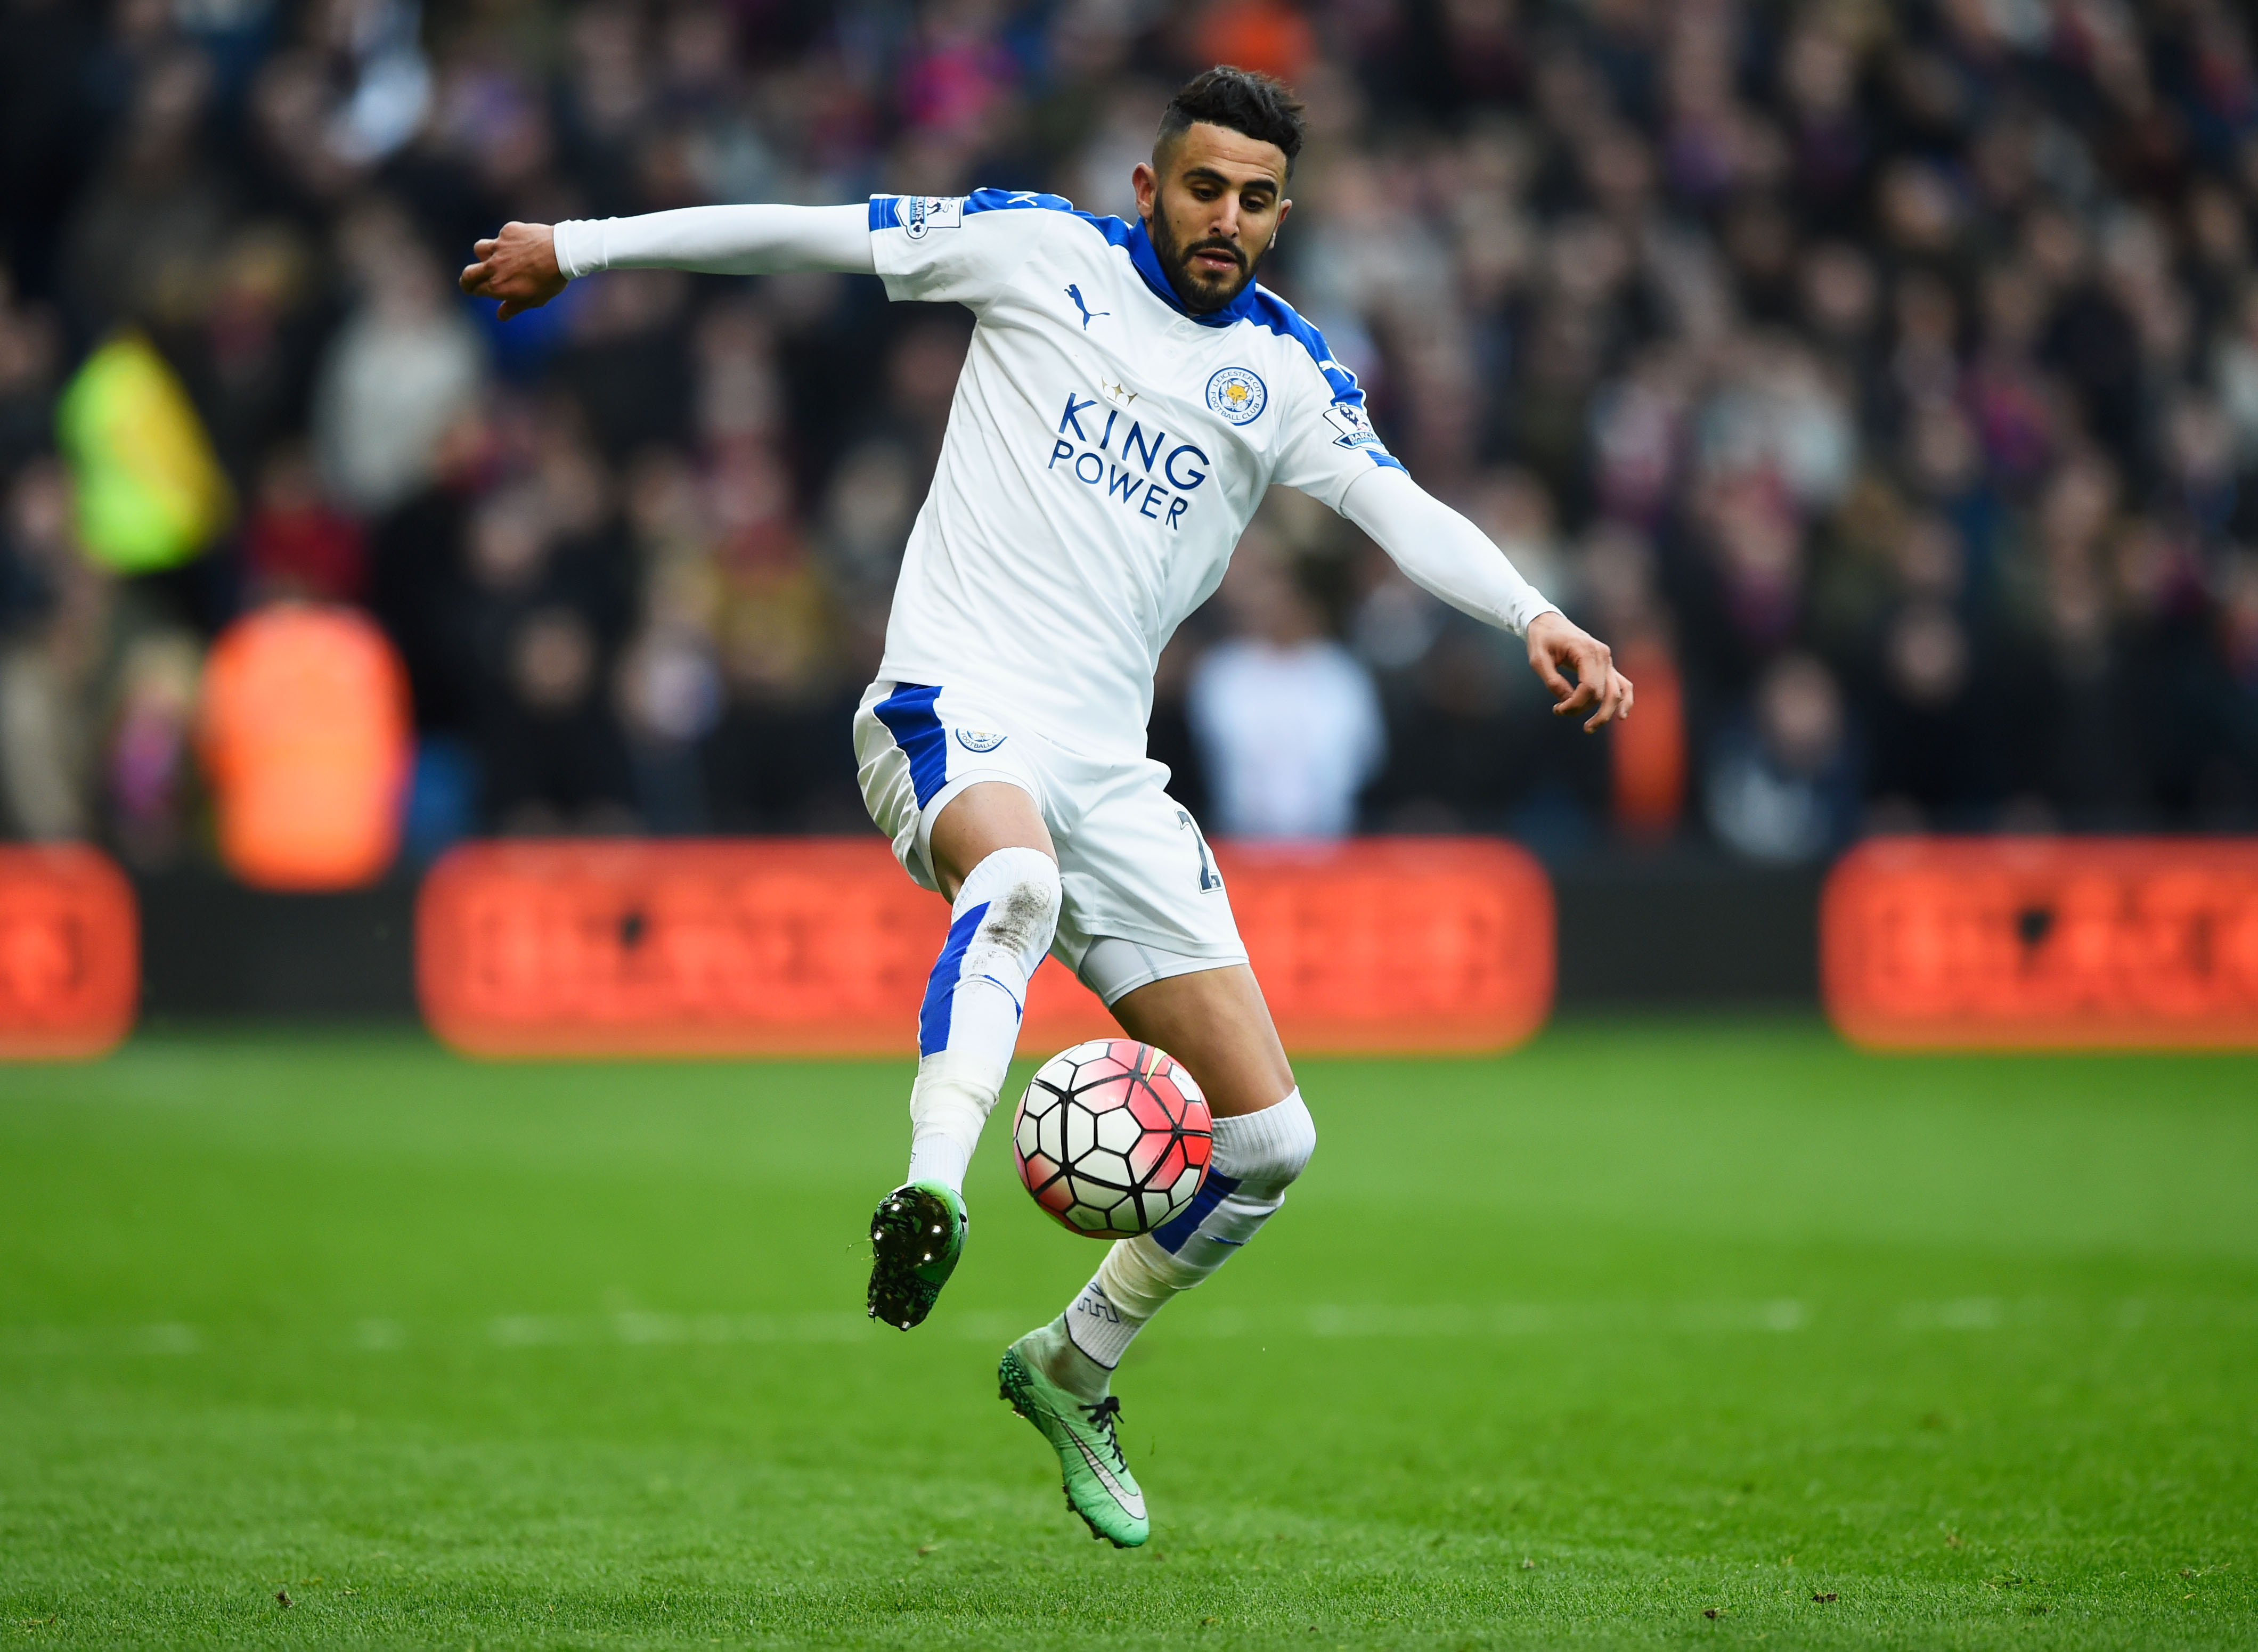 Leicester stream, LCFC stream, Leicester City stream , Southampton Leicester, Southampton Leicester stream, Southampton Leicester live, streaming, Southampton stream, online, watch, free, live, channel, app, phone, console, tablet, Leicester live,